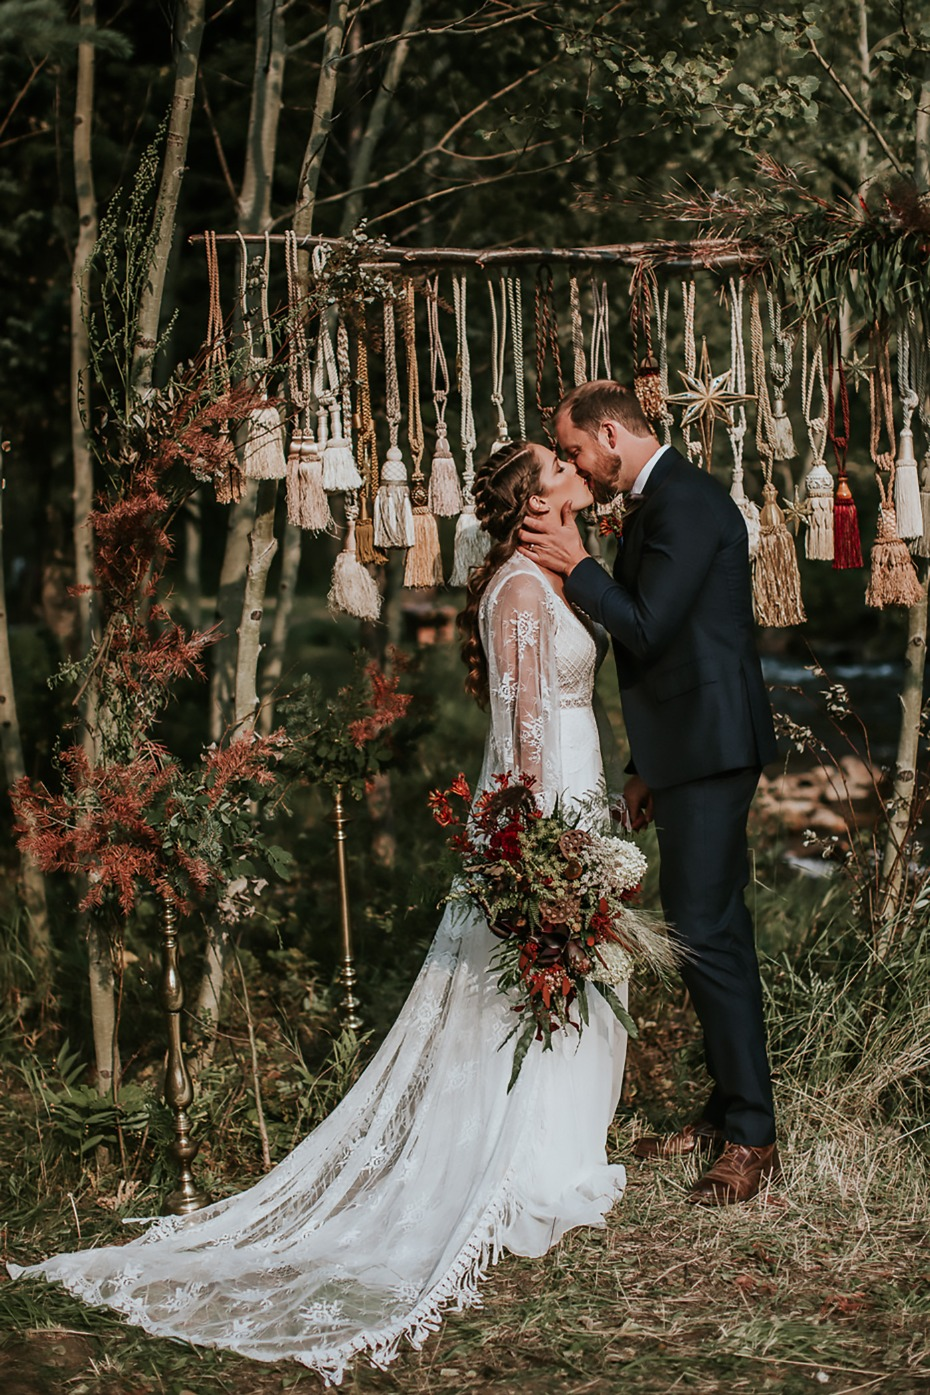 Rustic forest wedding with a vintage tassel wedding backdrop